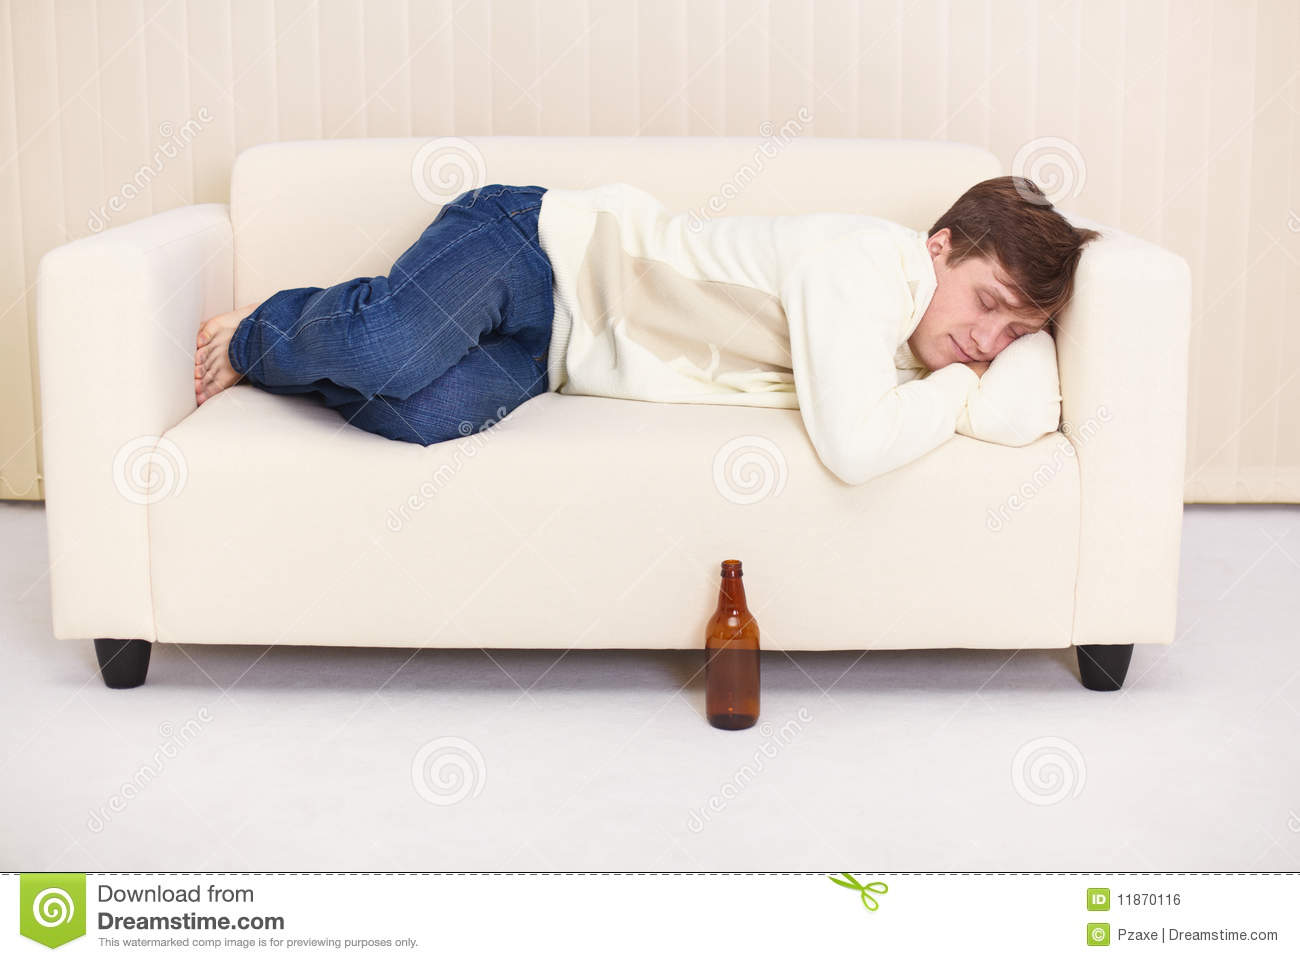 Man Sleep On Sofa Having Got Drunk Beer Stock Photo  : man sleep sofa having got drunk beer 11870116 from www.dreamstime.com size 1300 x 962 jpeg 73kB